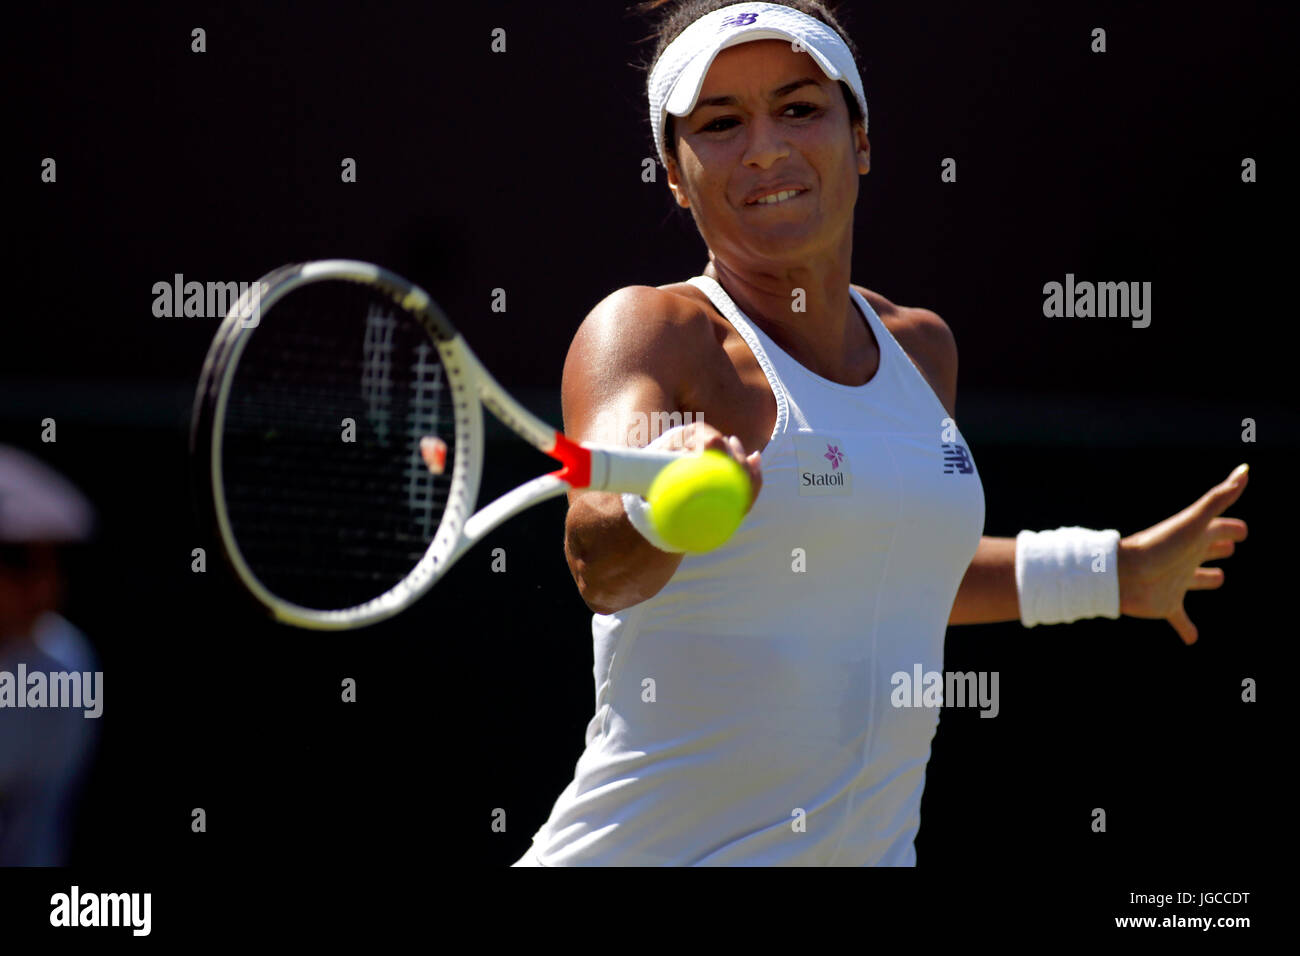 London, UK. 05th July, 2017.  Heather Watson of Great Britain in action during her second round match at Wimbledon - Stock Image